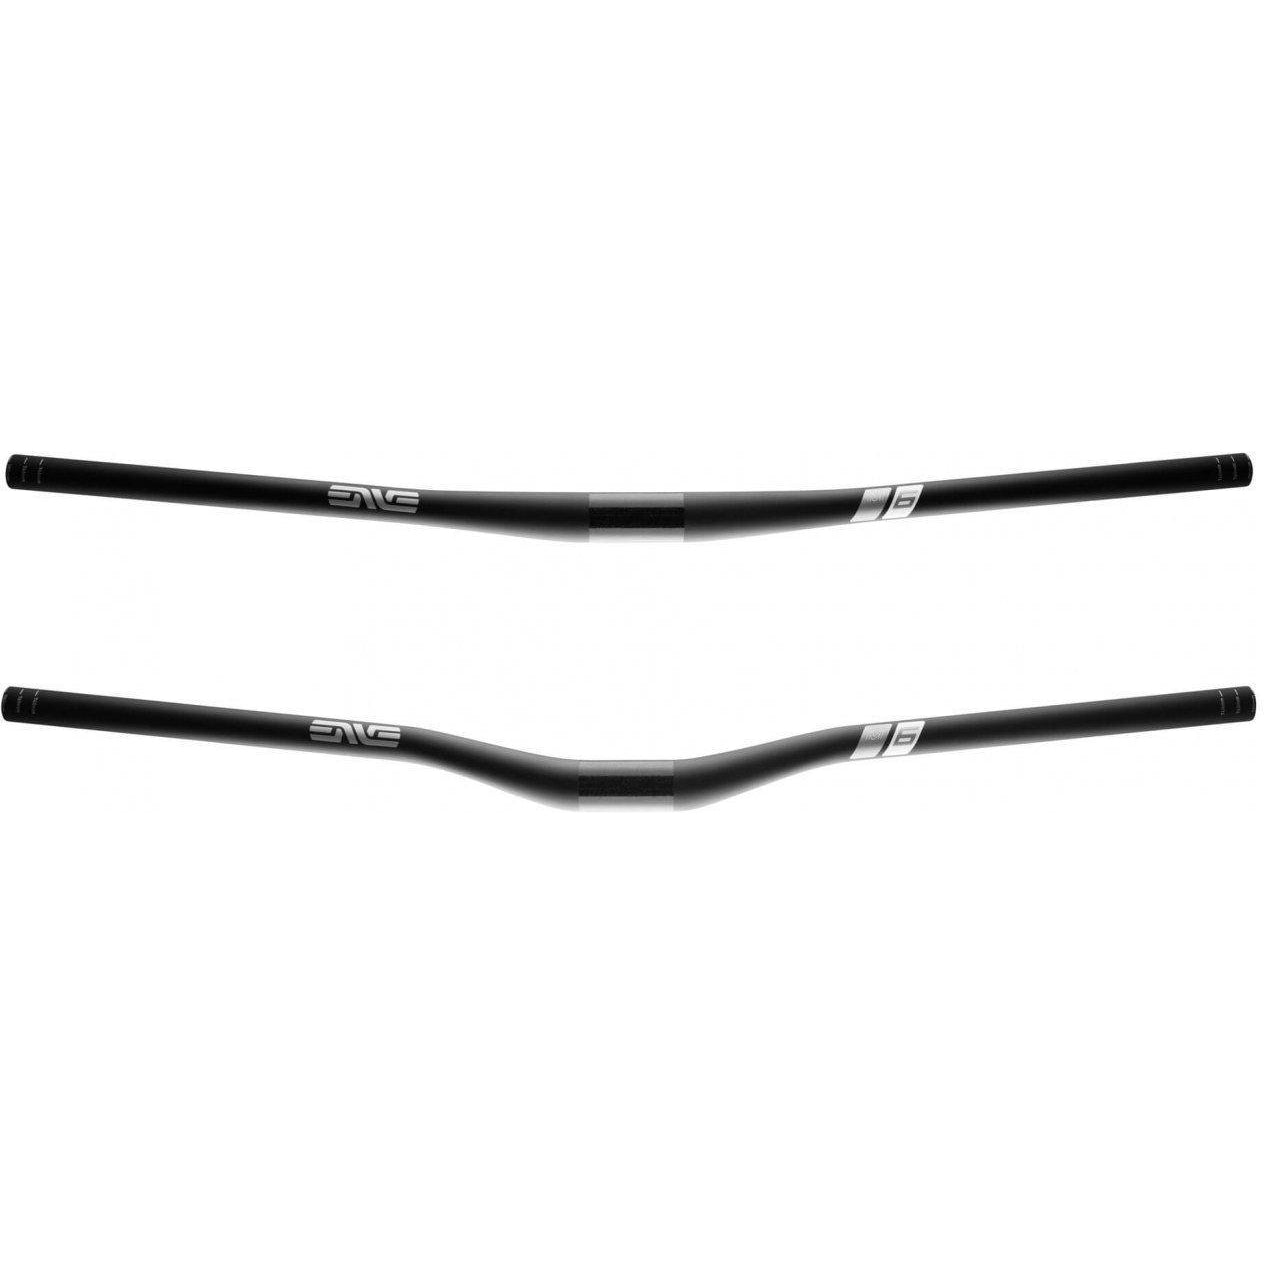 ENVE M6 Mountain Handlebar - 31.8mm